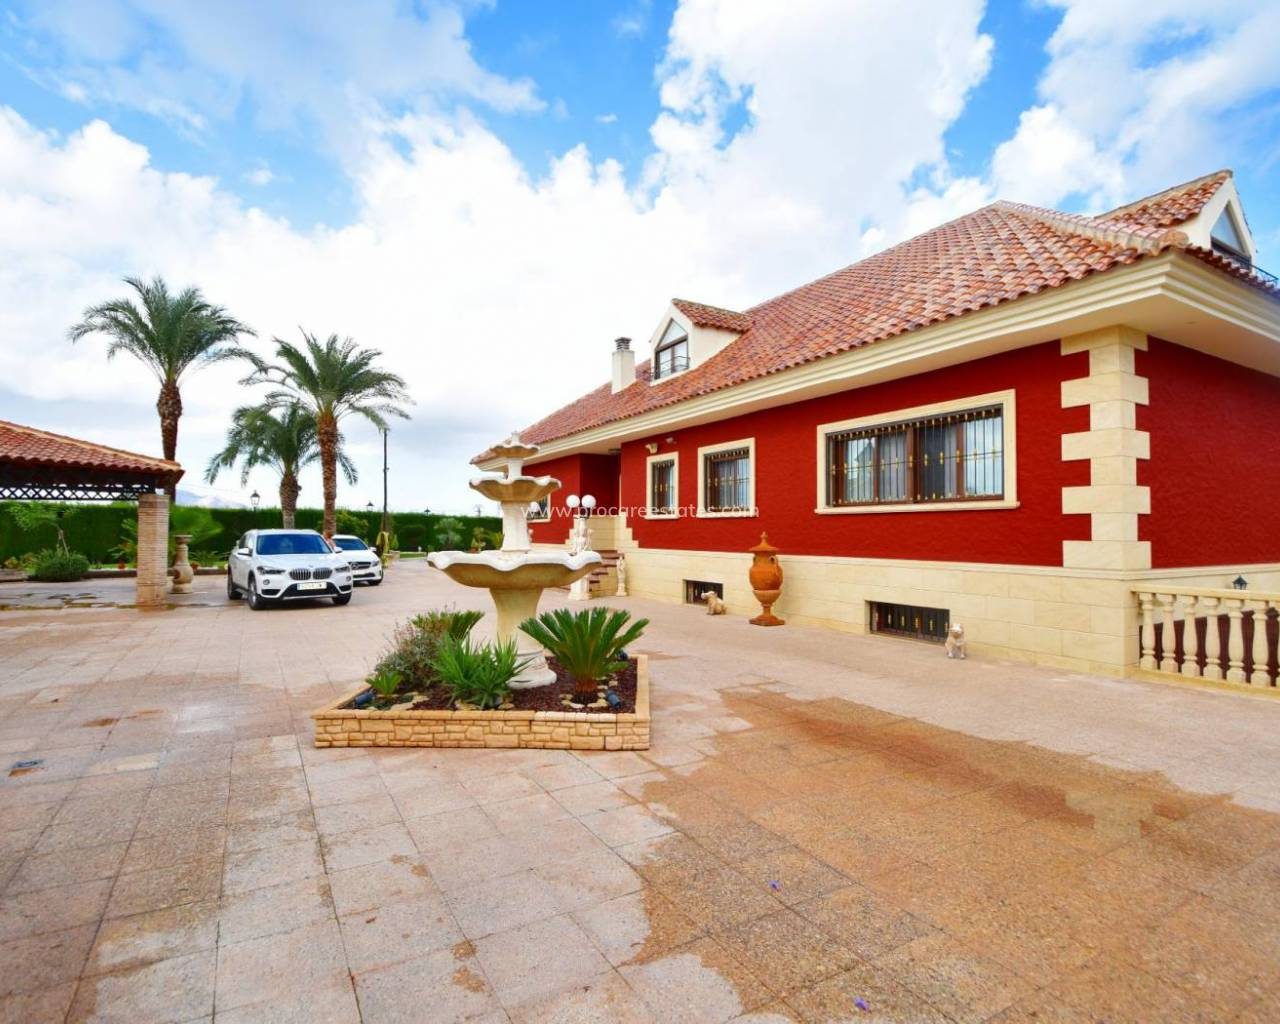 Country Property - Revente - Dolores - Dolores